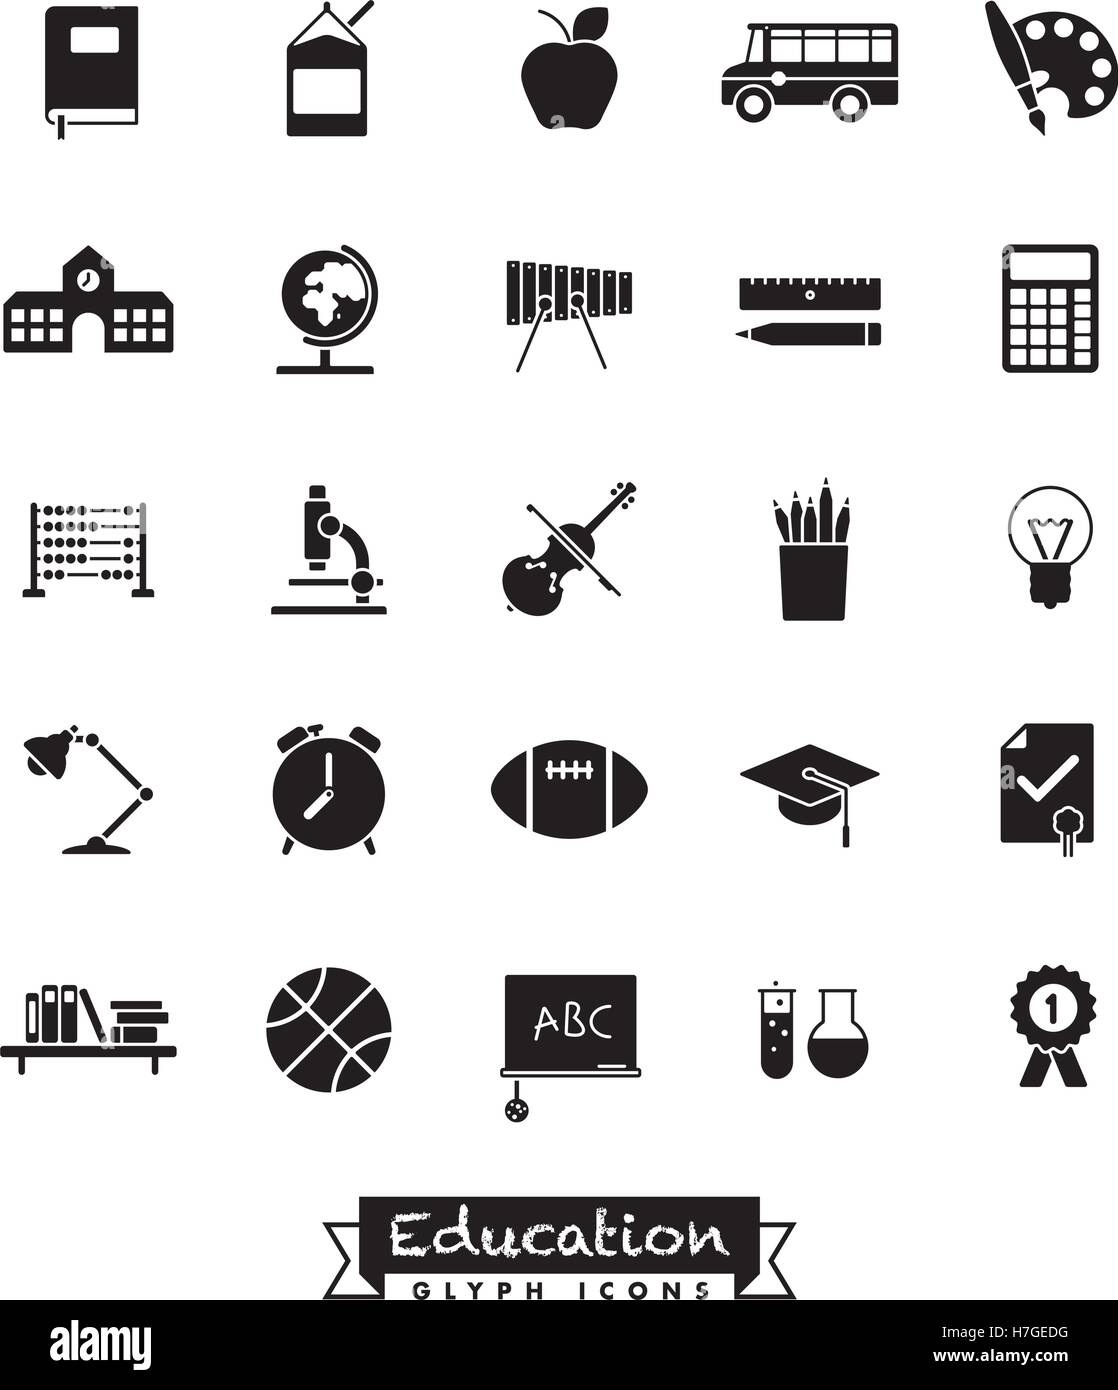 Collection of school and education related vector glyph icons - Stock Image